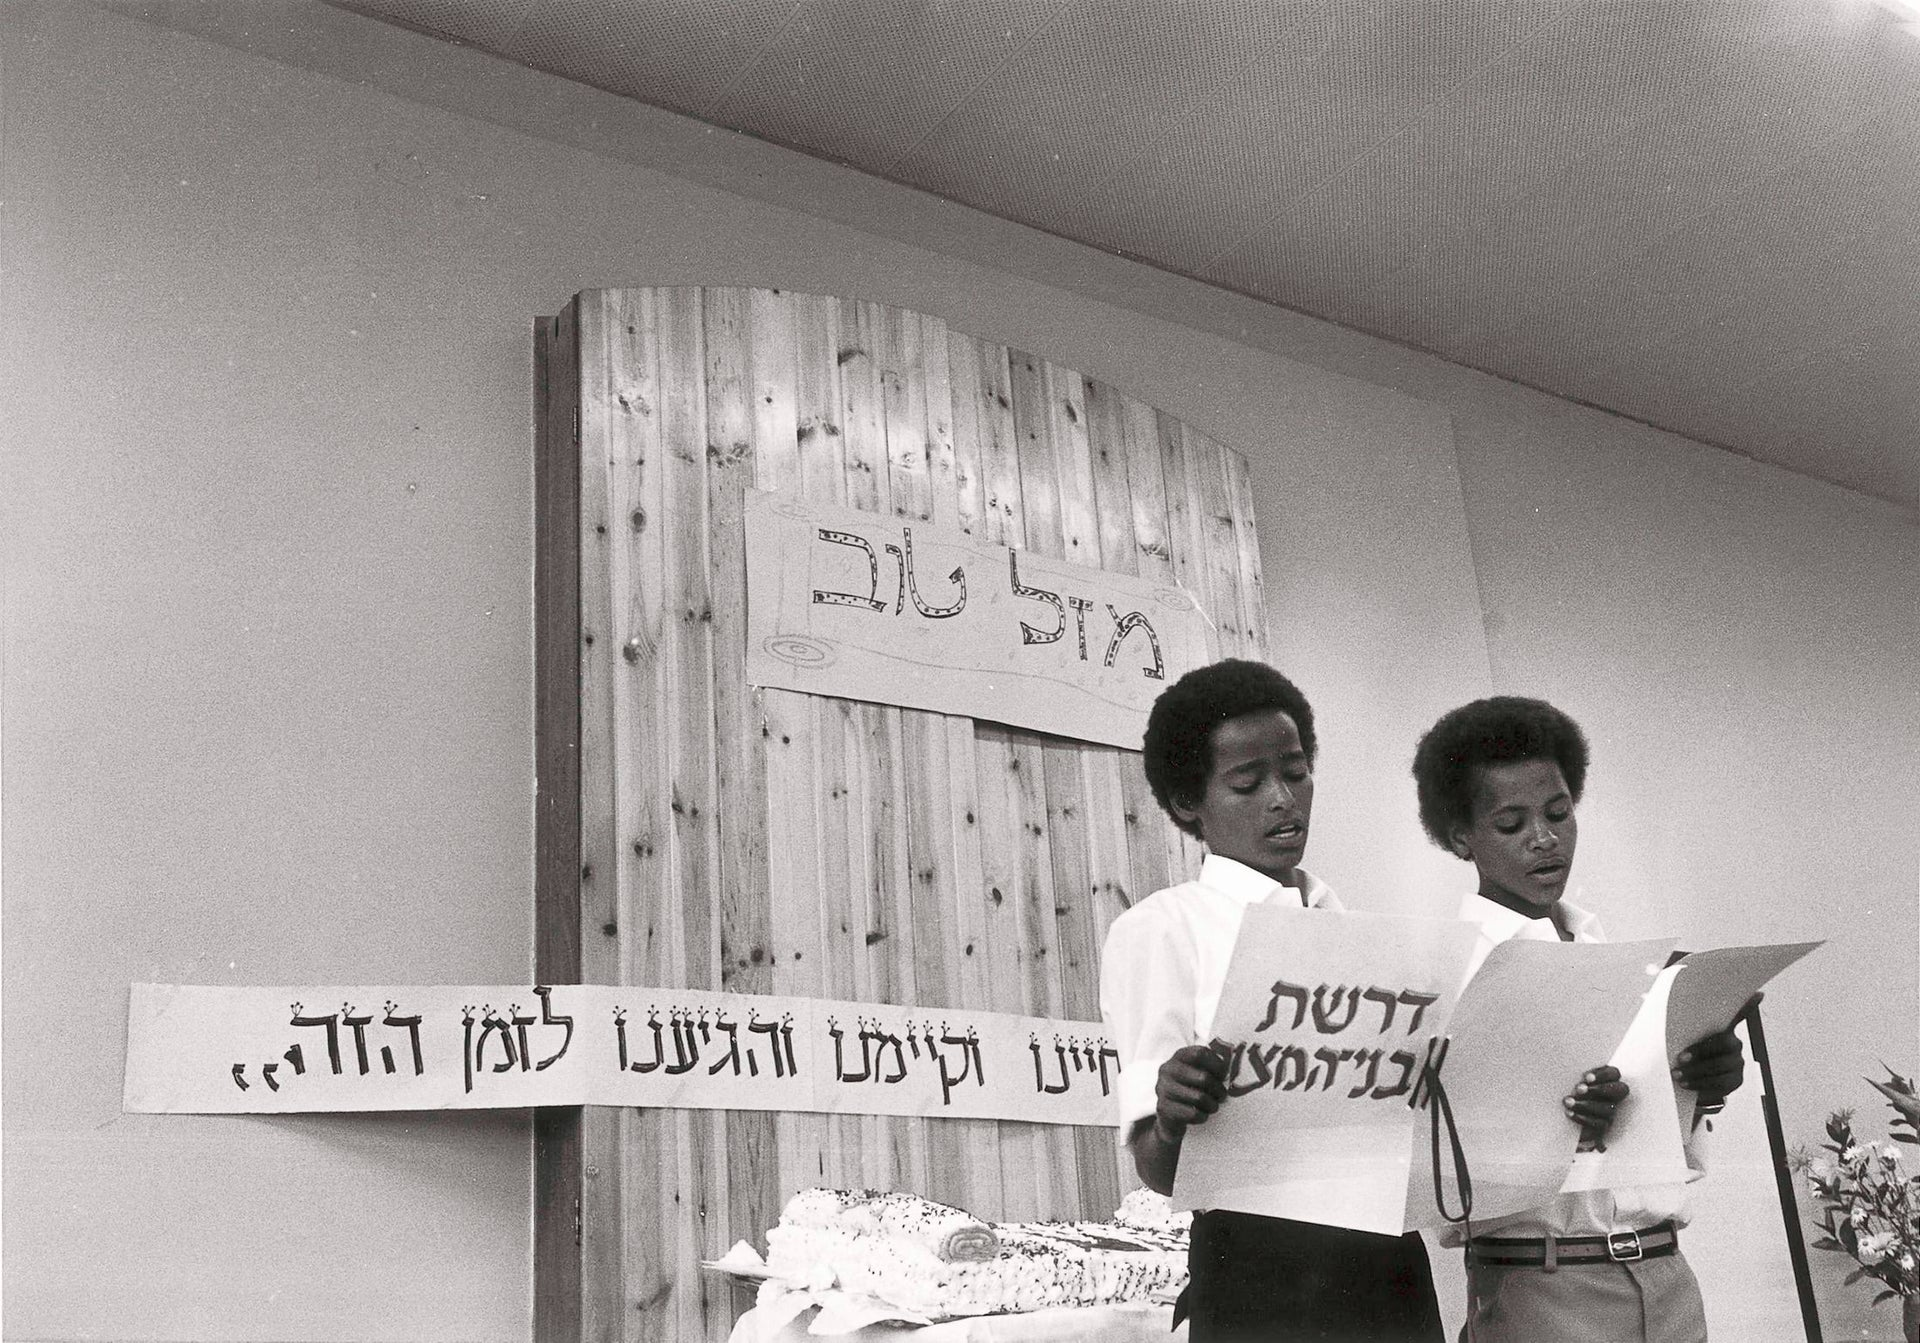 Redai Tessma (right) belatedly celebrating his bar mitzvah upon his 14th birthday in the mid-1980s.